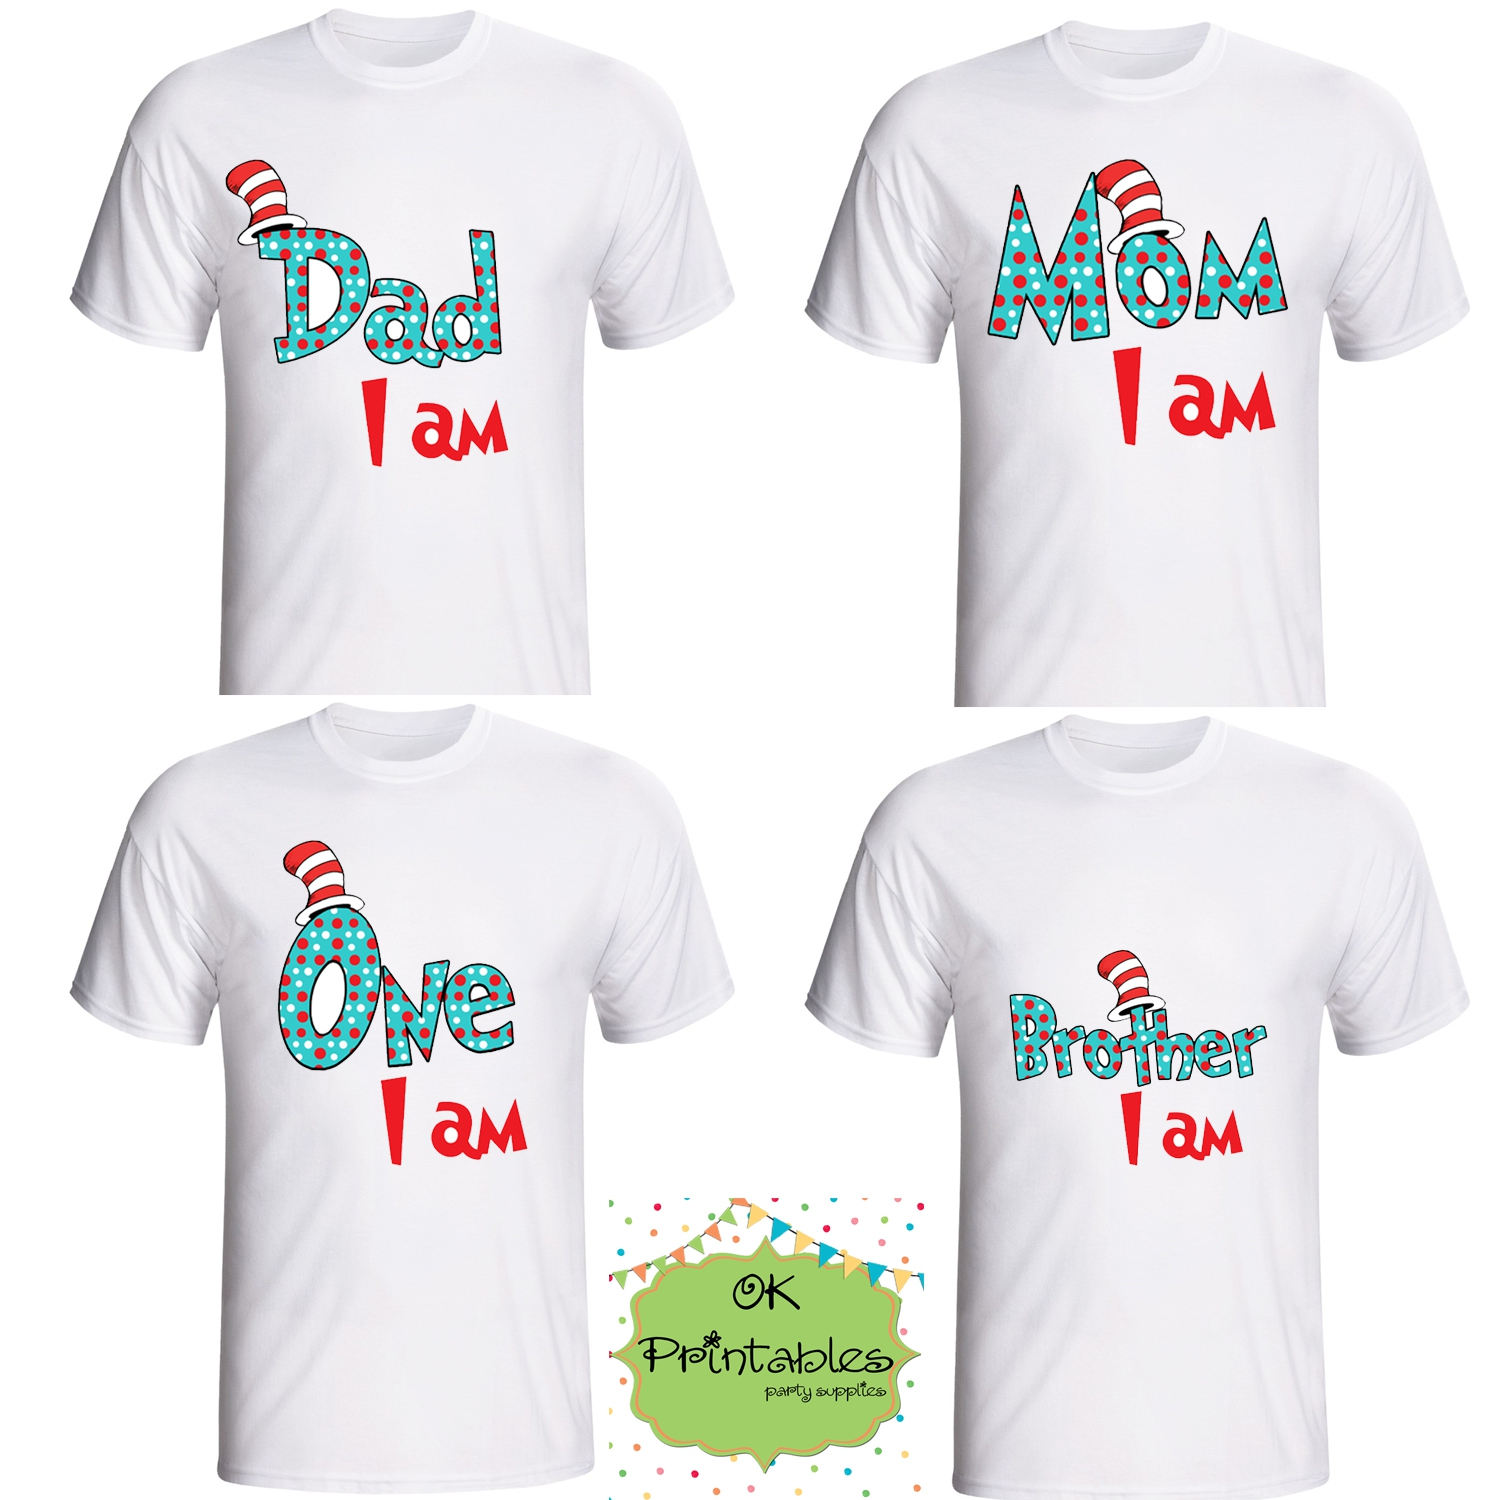 graphic relating to Printable Iron on referred to as Father I Am, Mother I Am, Just one I Am, BROTHER I Am- Printable Iron Upon - Do it yourself Disney Blouse - Iron Upon Move